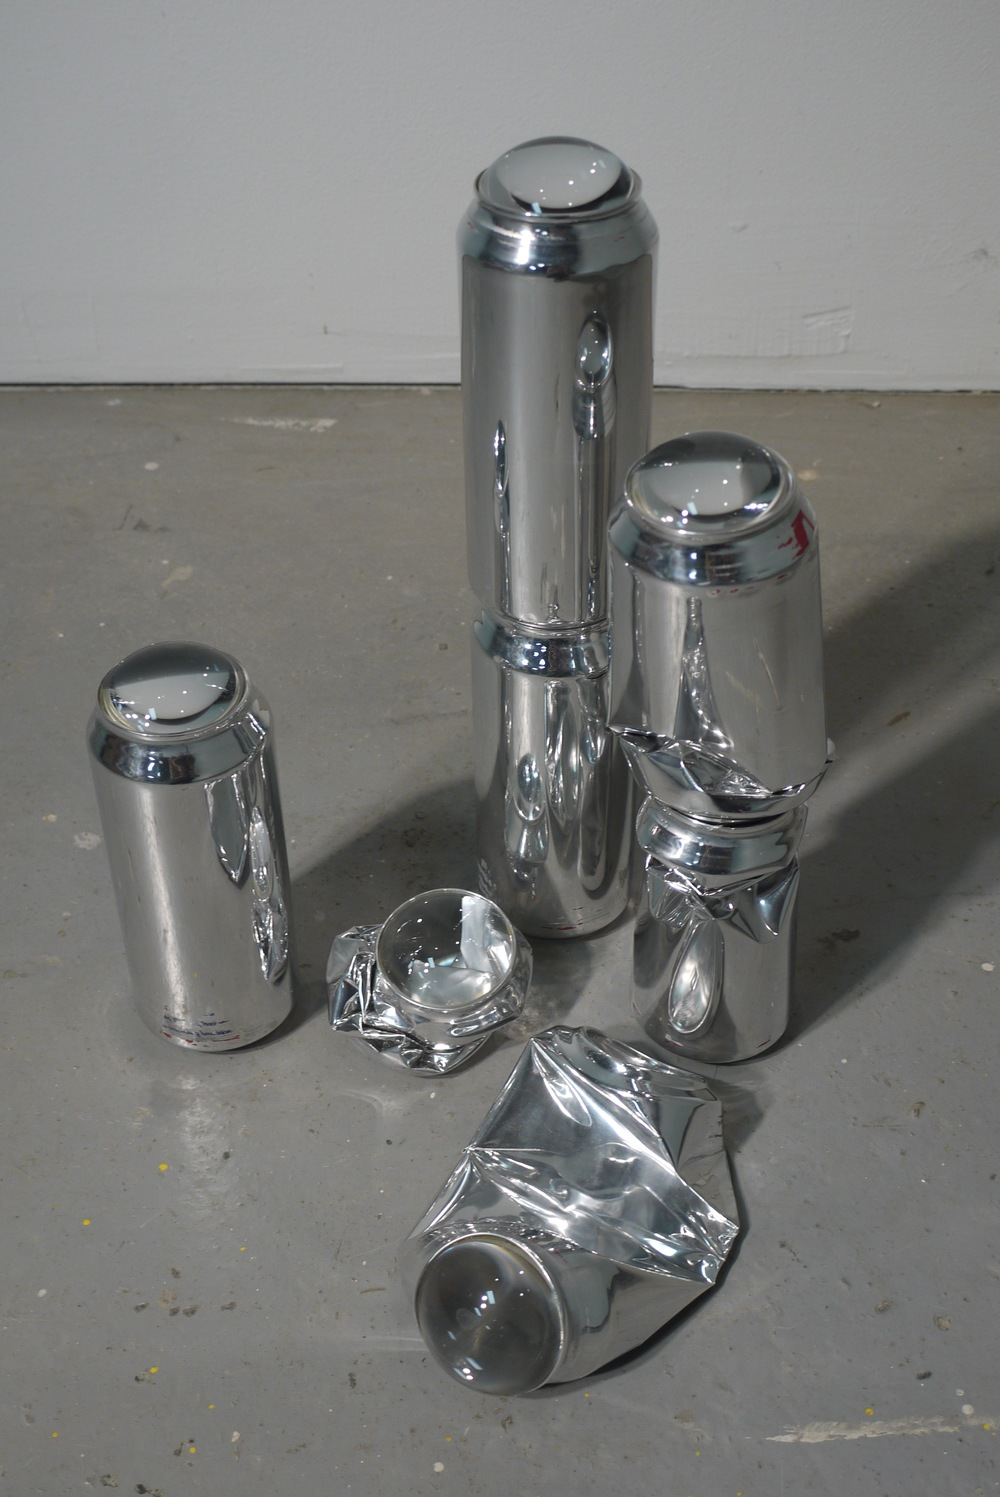 Lungs, 2010, dimensions variable, high polished beer cans, projector lenses